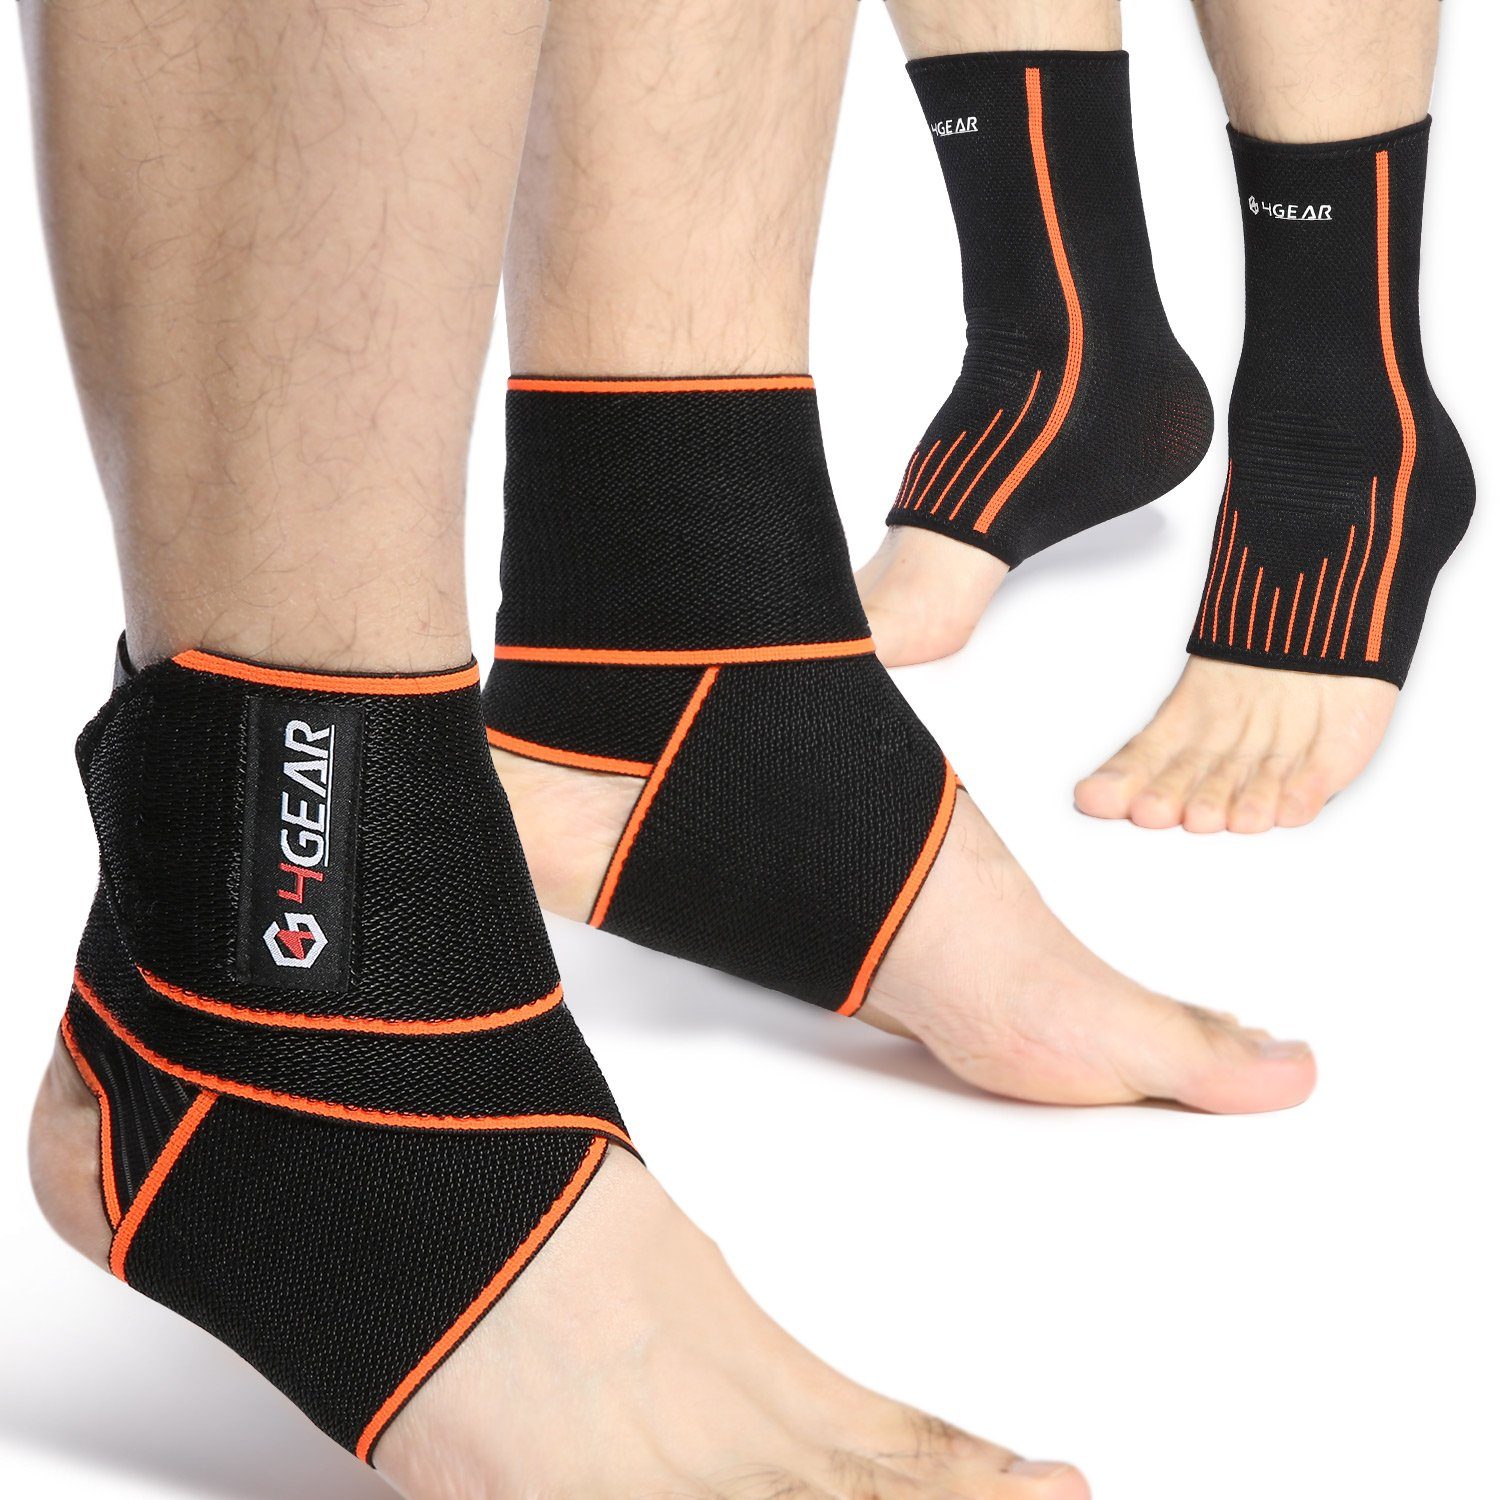 Ankle Support Kit - 4 Pack - Ankle Brace Straps (1 Pair) & Ankle Compression Sleeves with Arch Supports (1 Pair) - Best for Sports Protection, Injury Recovery, Reduce Swelling, Ankle Strain (Large)